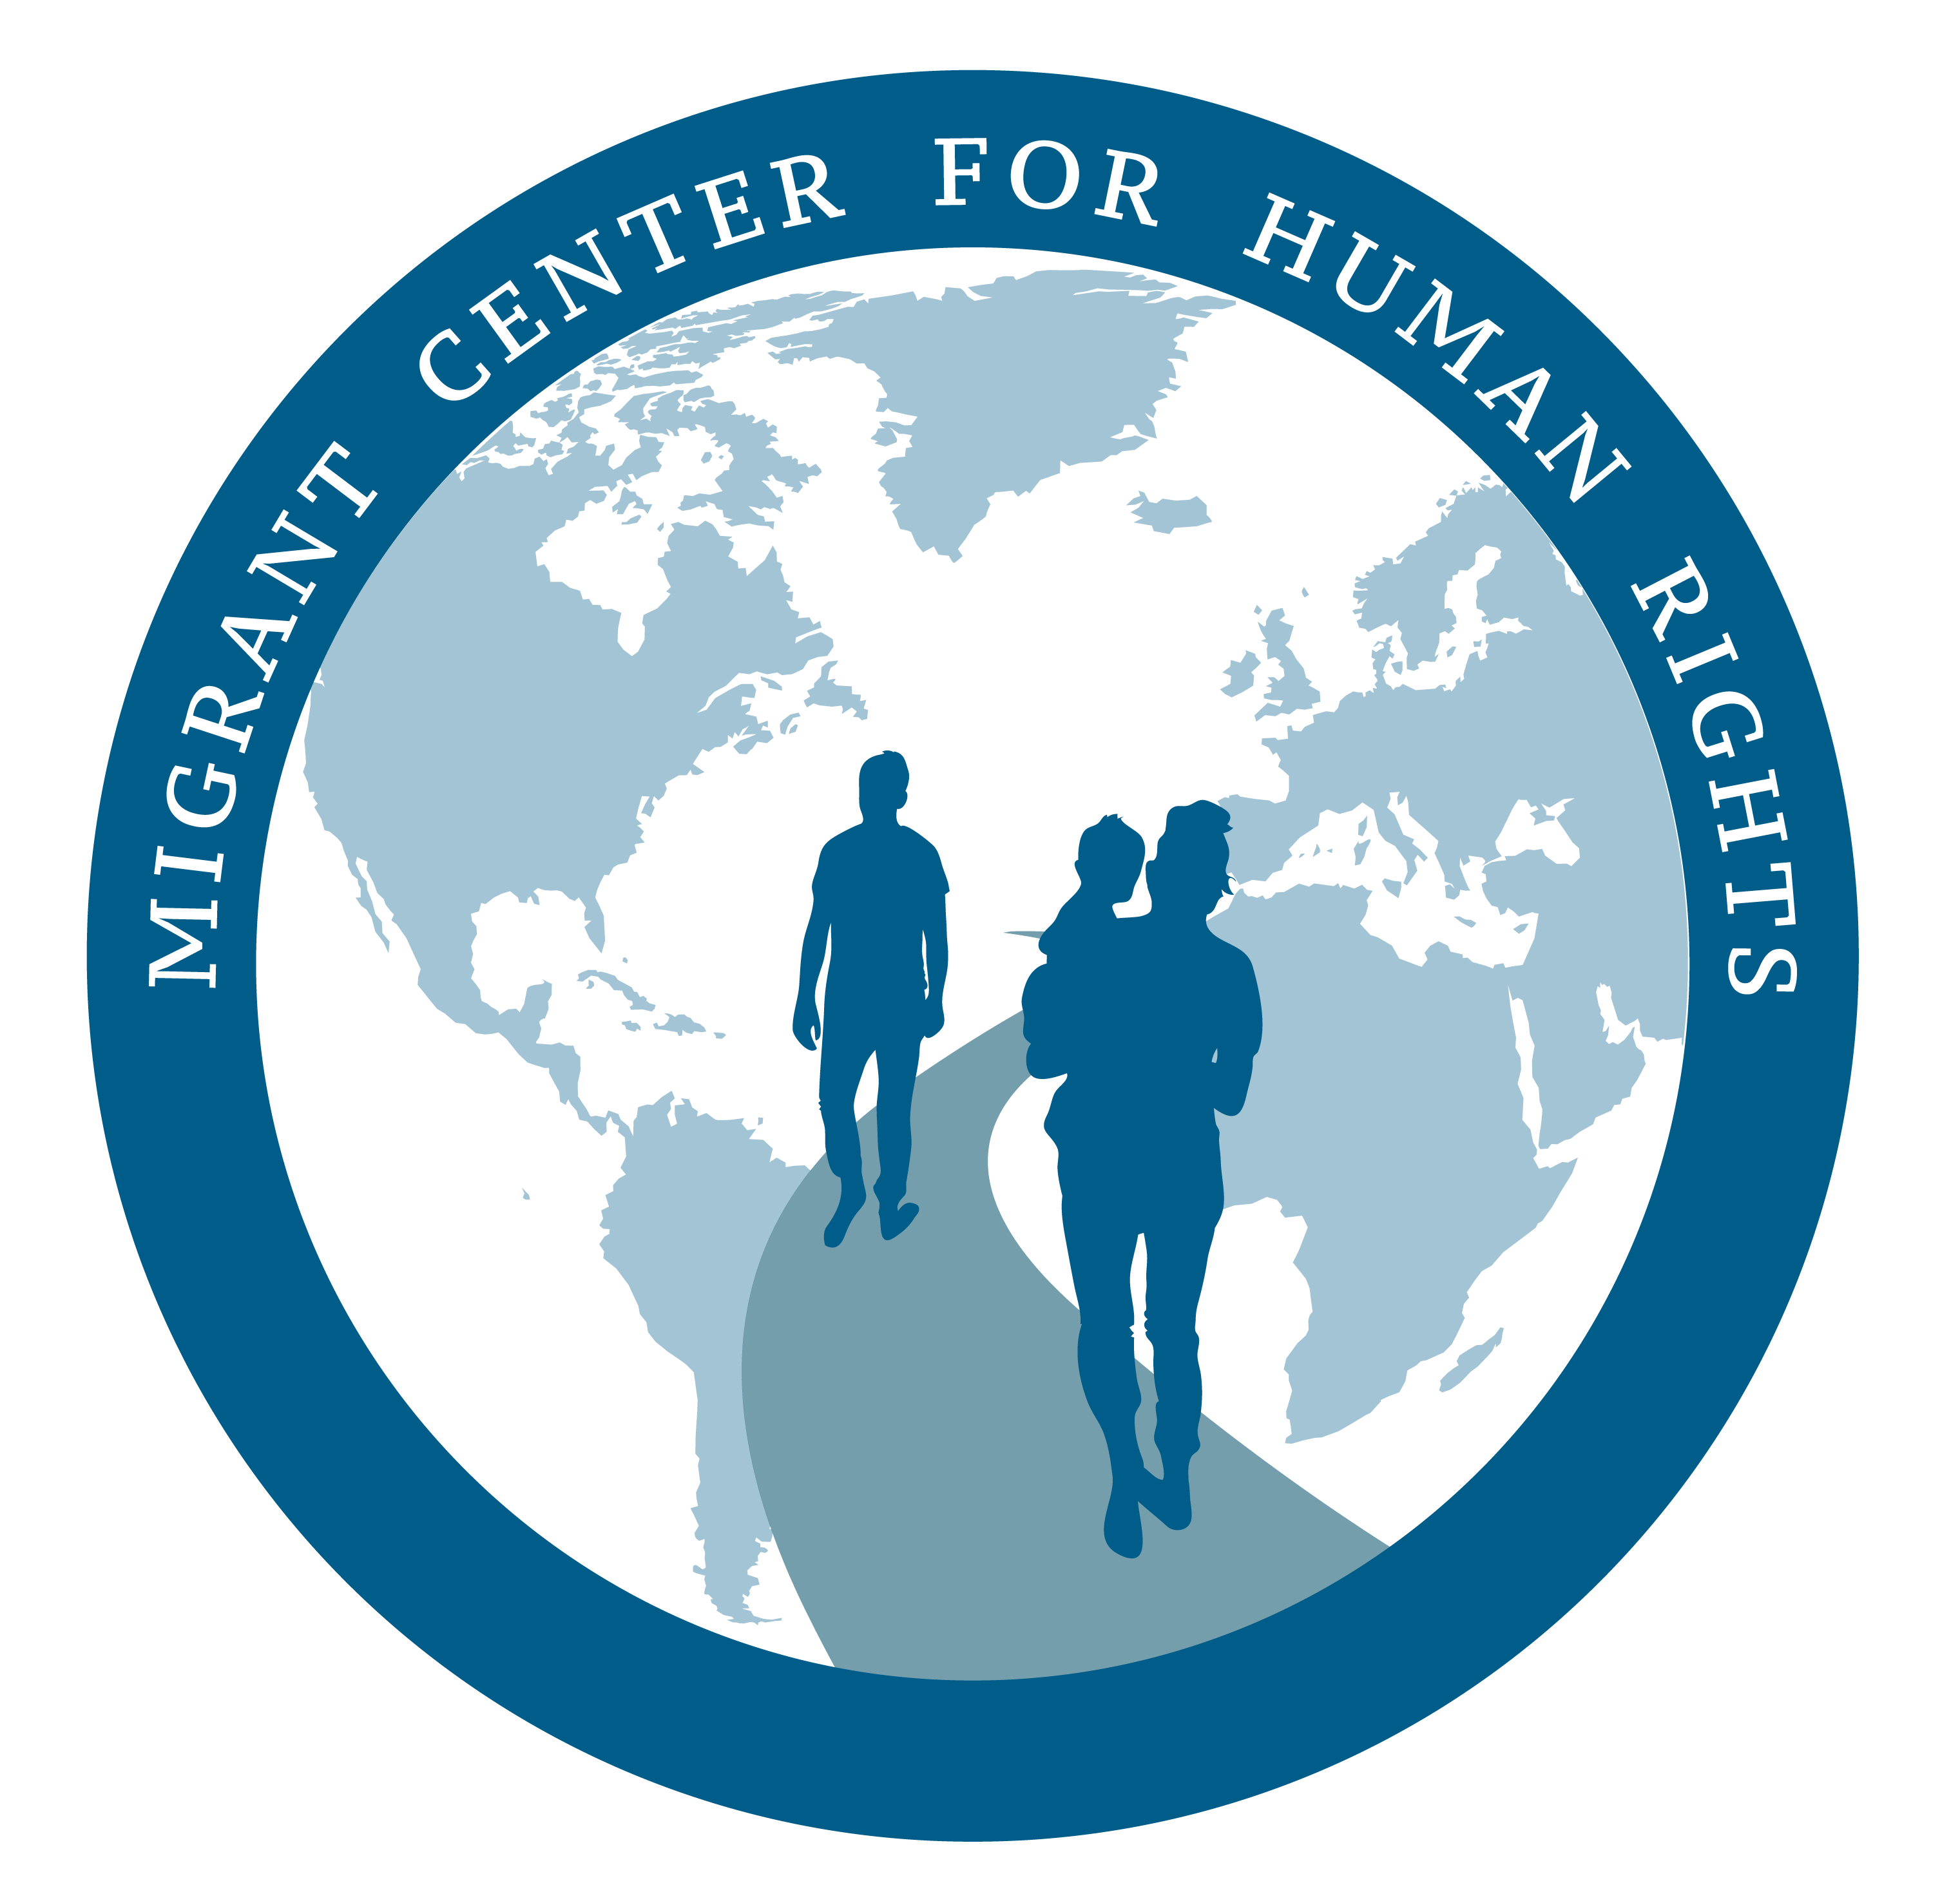 Success Stories - Migrant Center For Human Rights